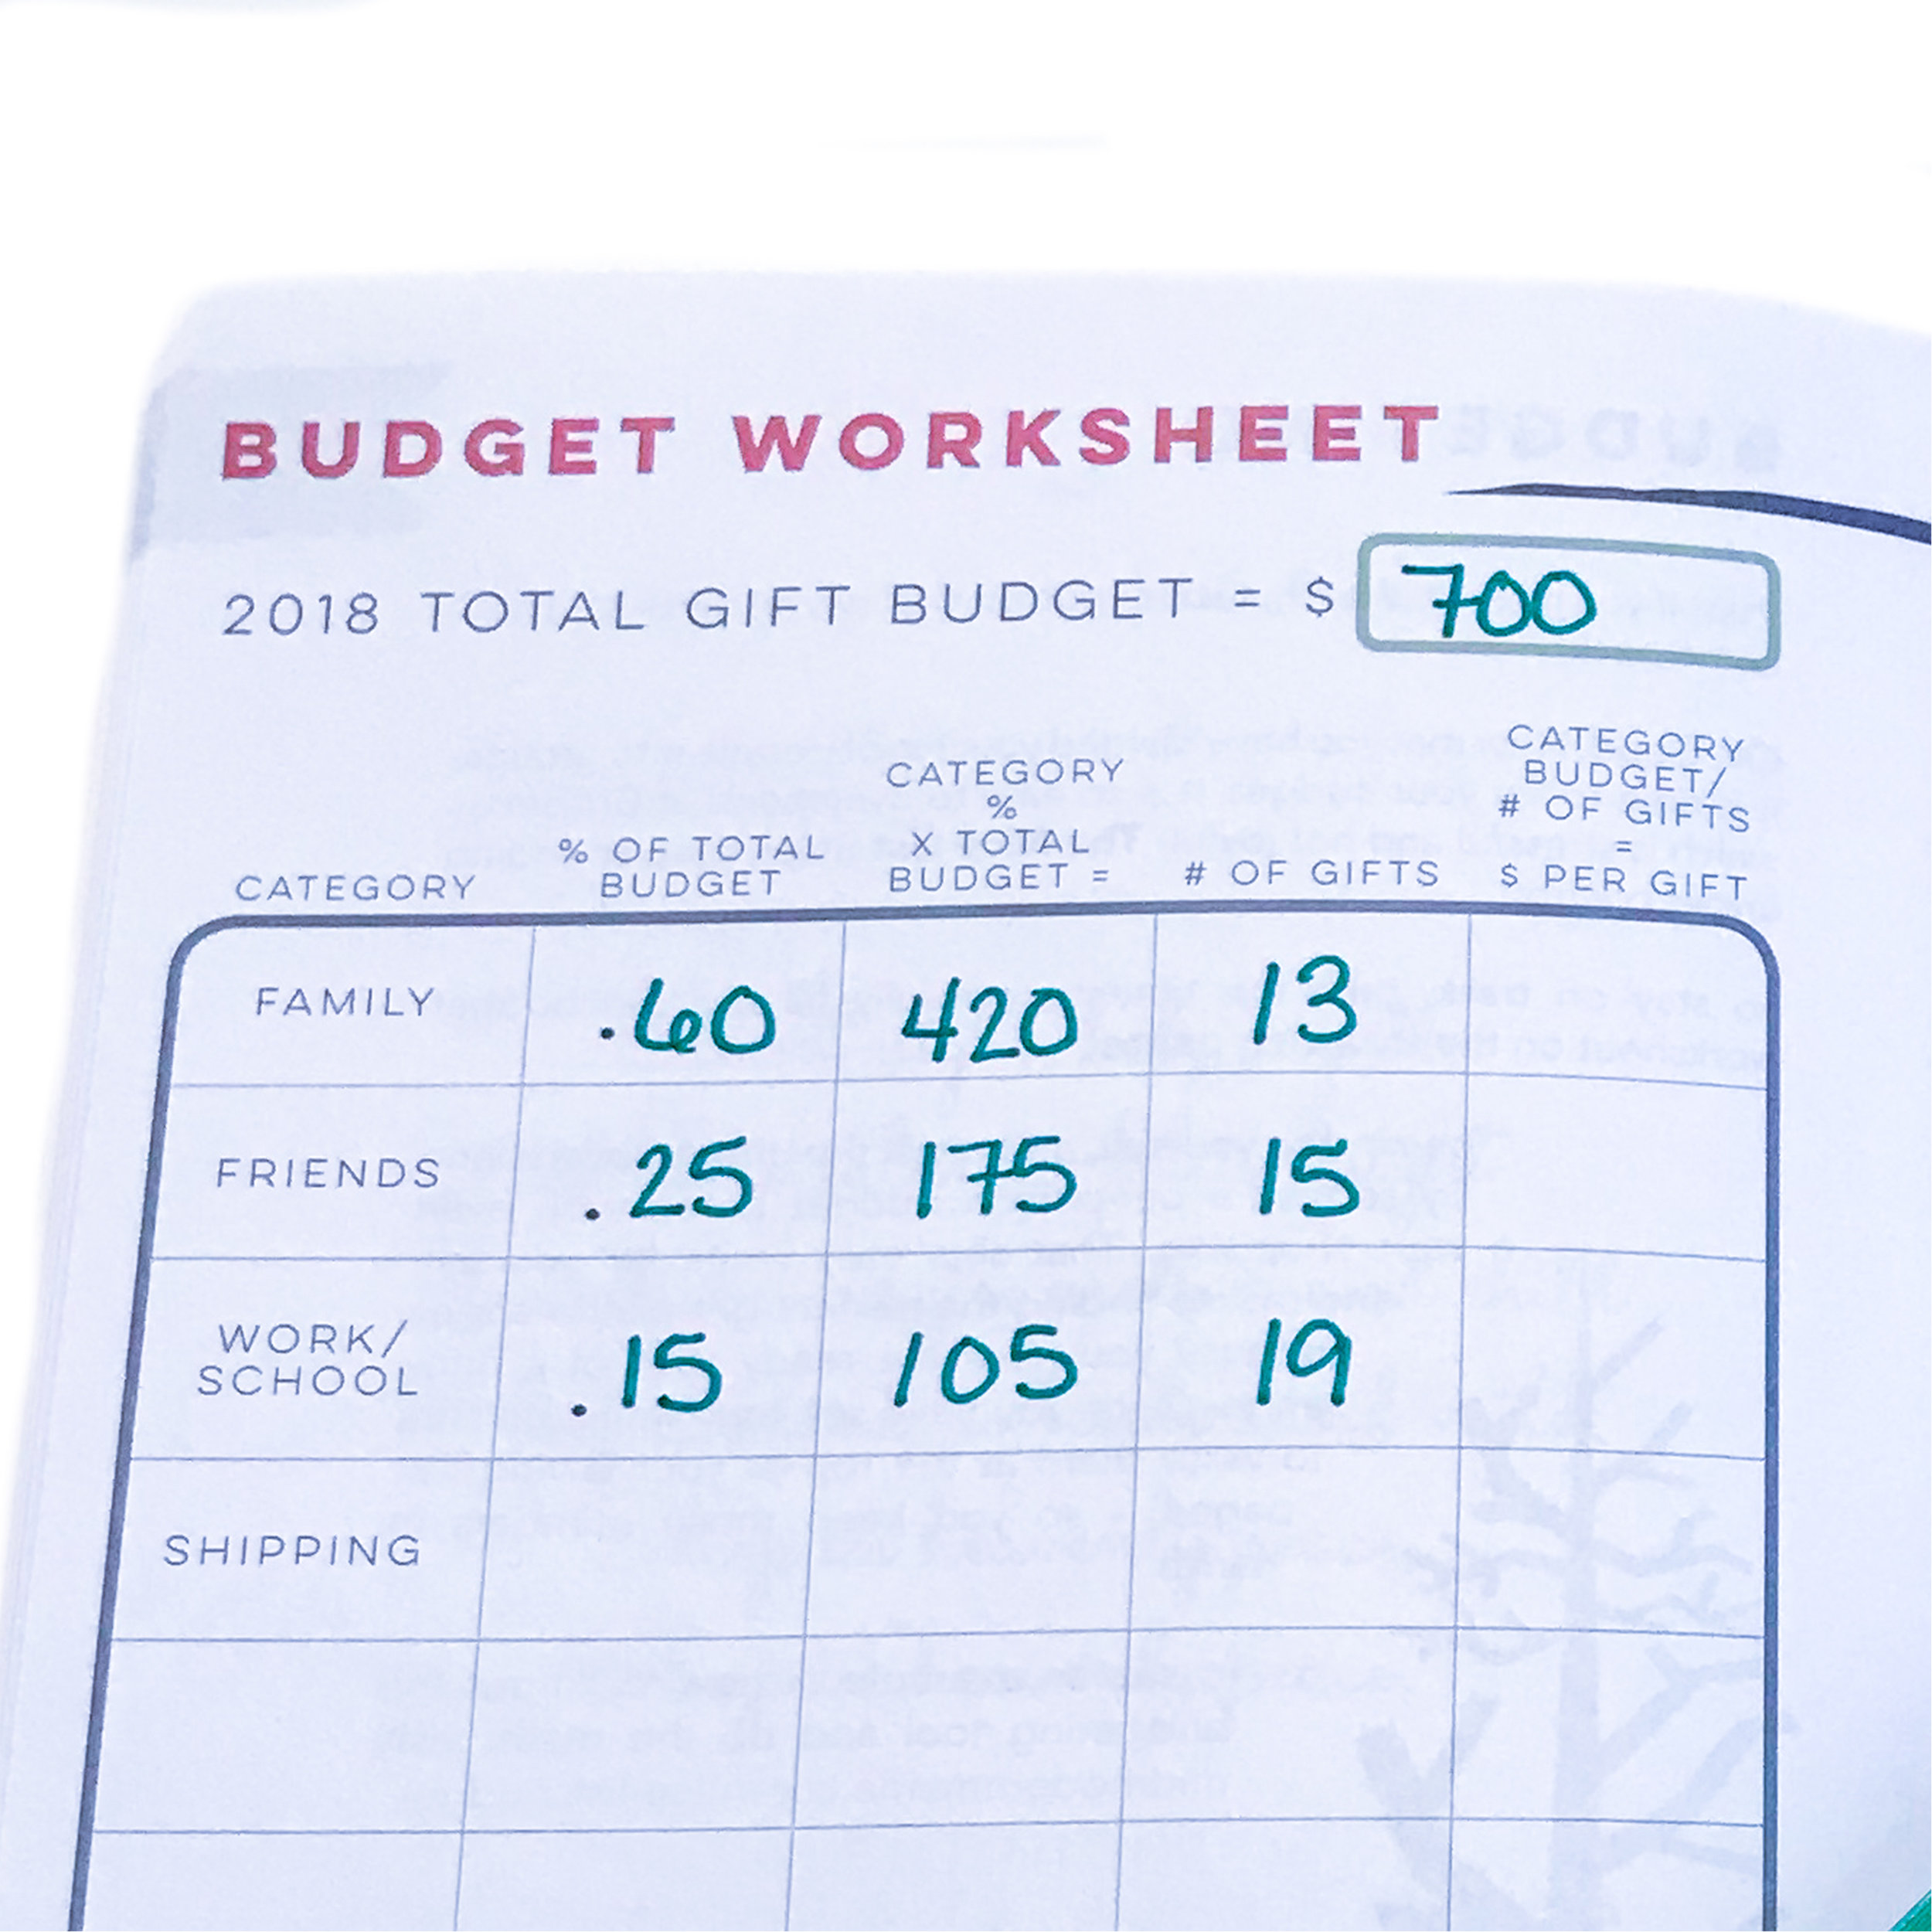 Simple multiplication gives you a total budget for each category.